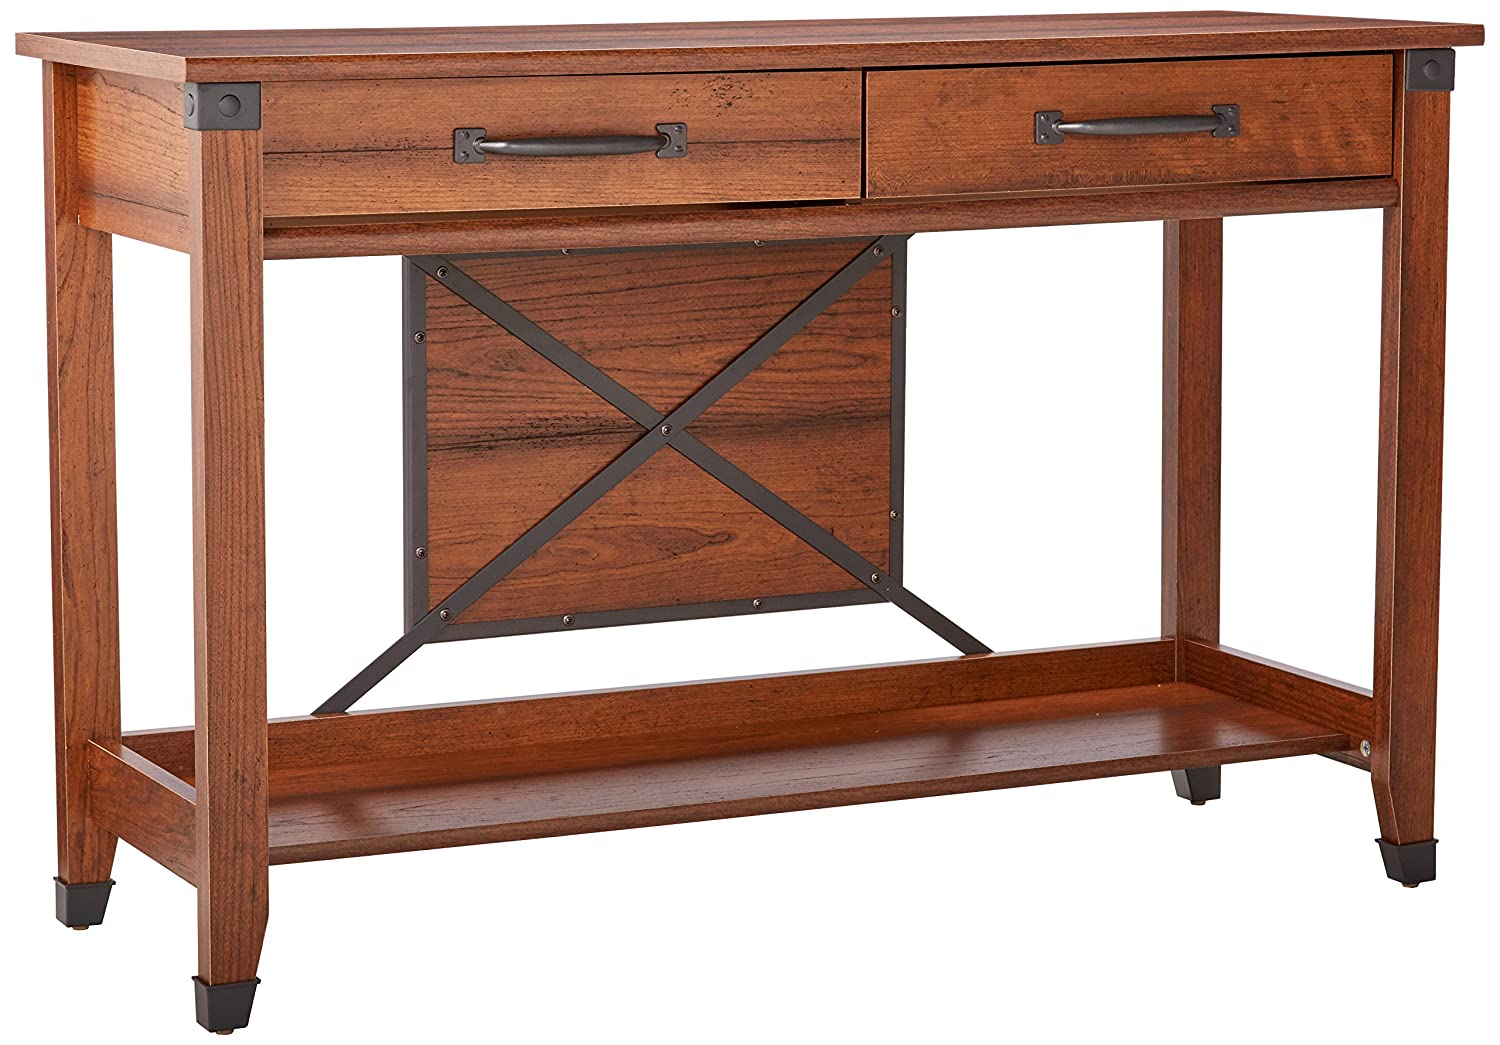 Sauder Carson Forge Sofa Table, Washington Cherry Finish 414443